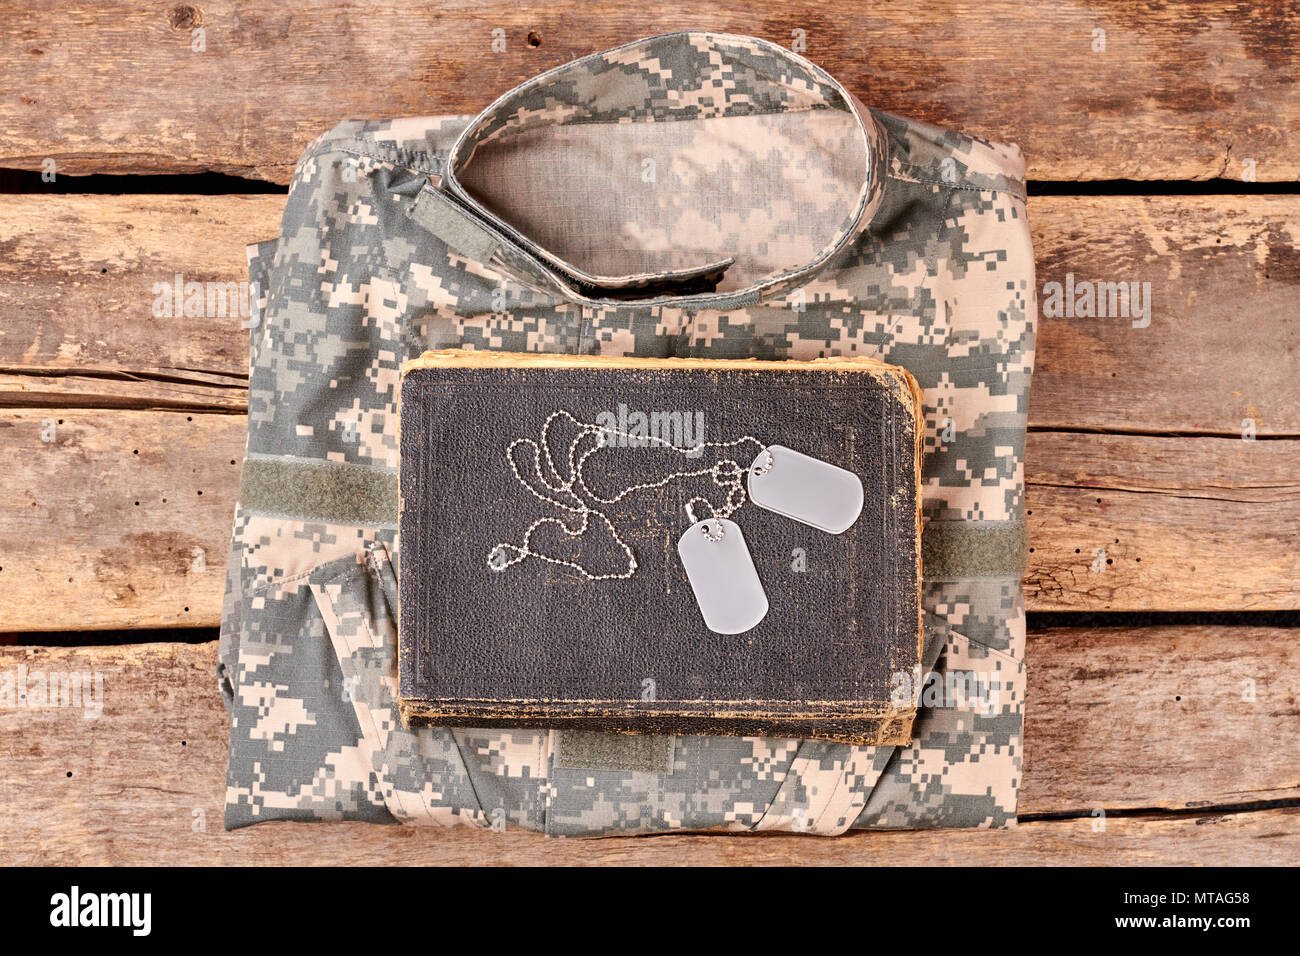 Camouflage army clothes, book, and dog tags on wood. Flay lay, top view. Stock Photo